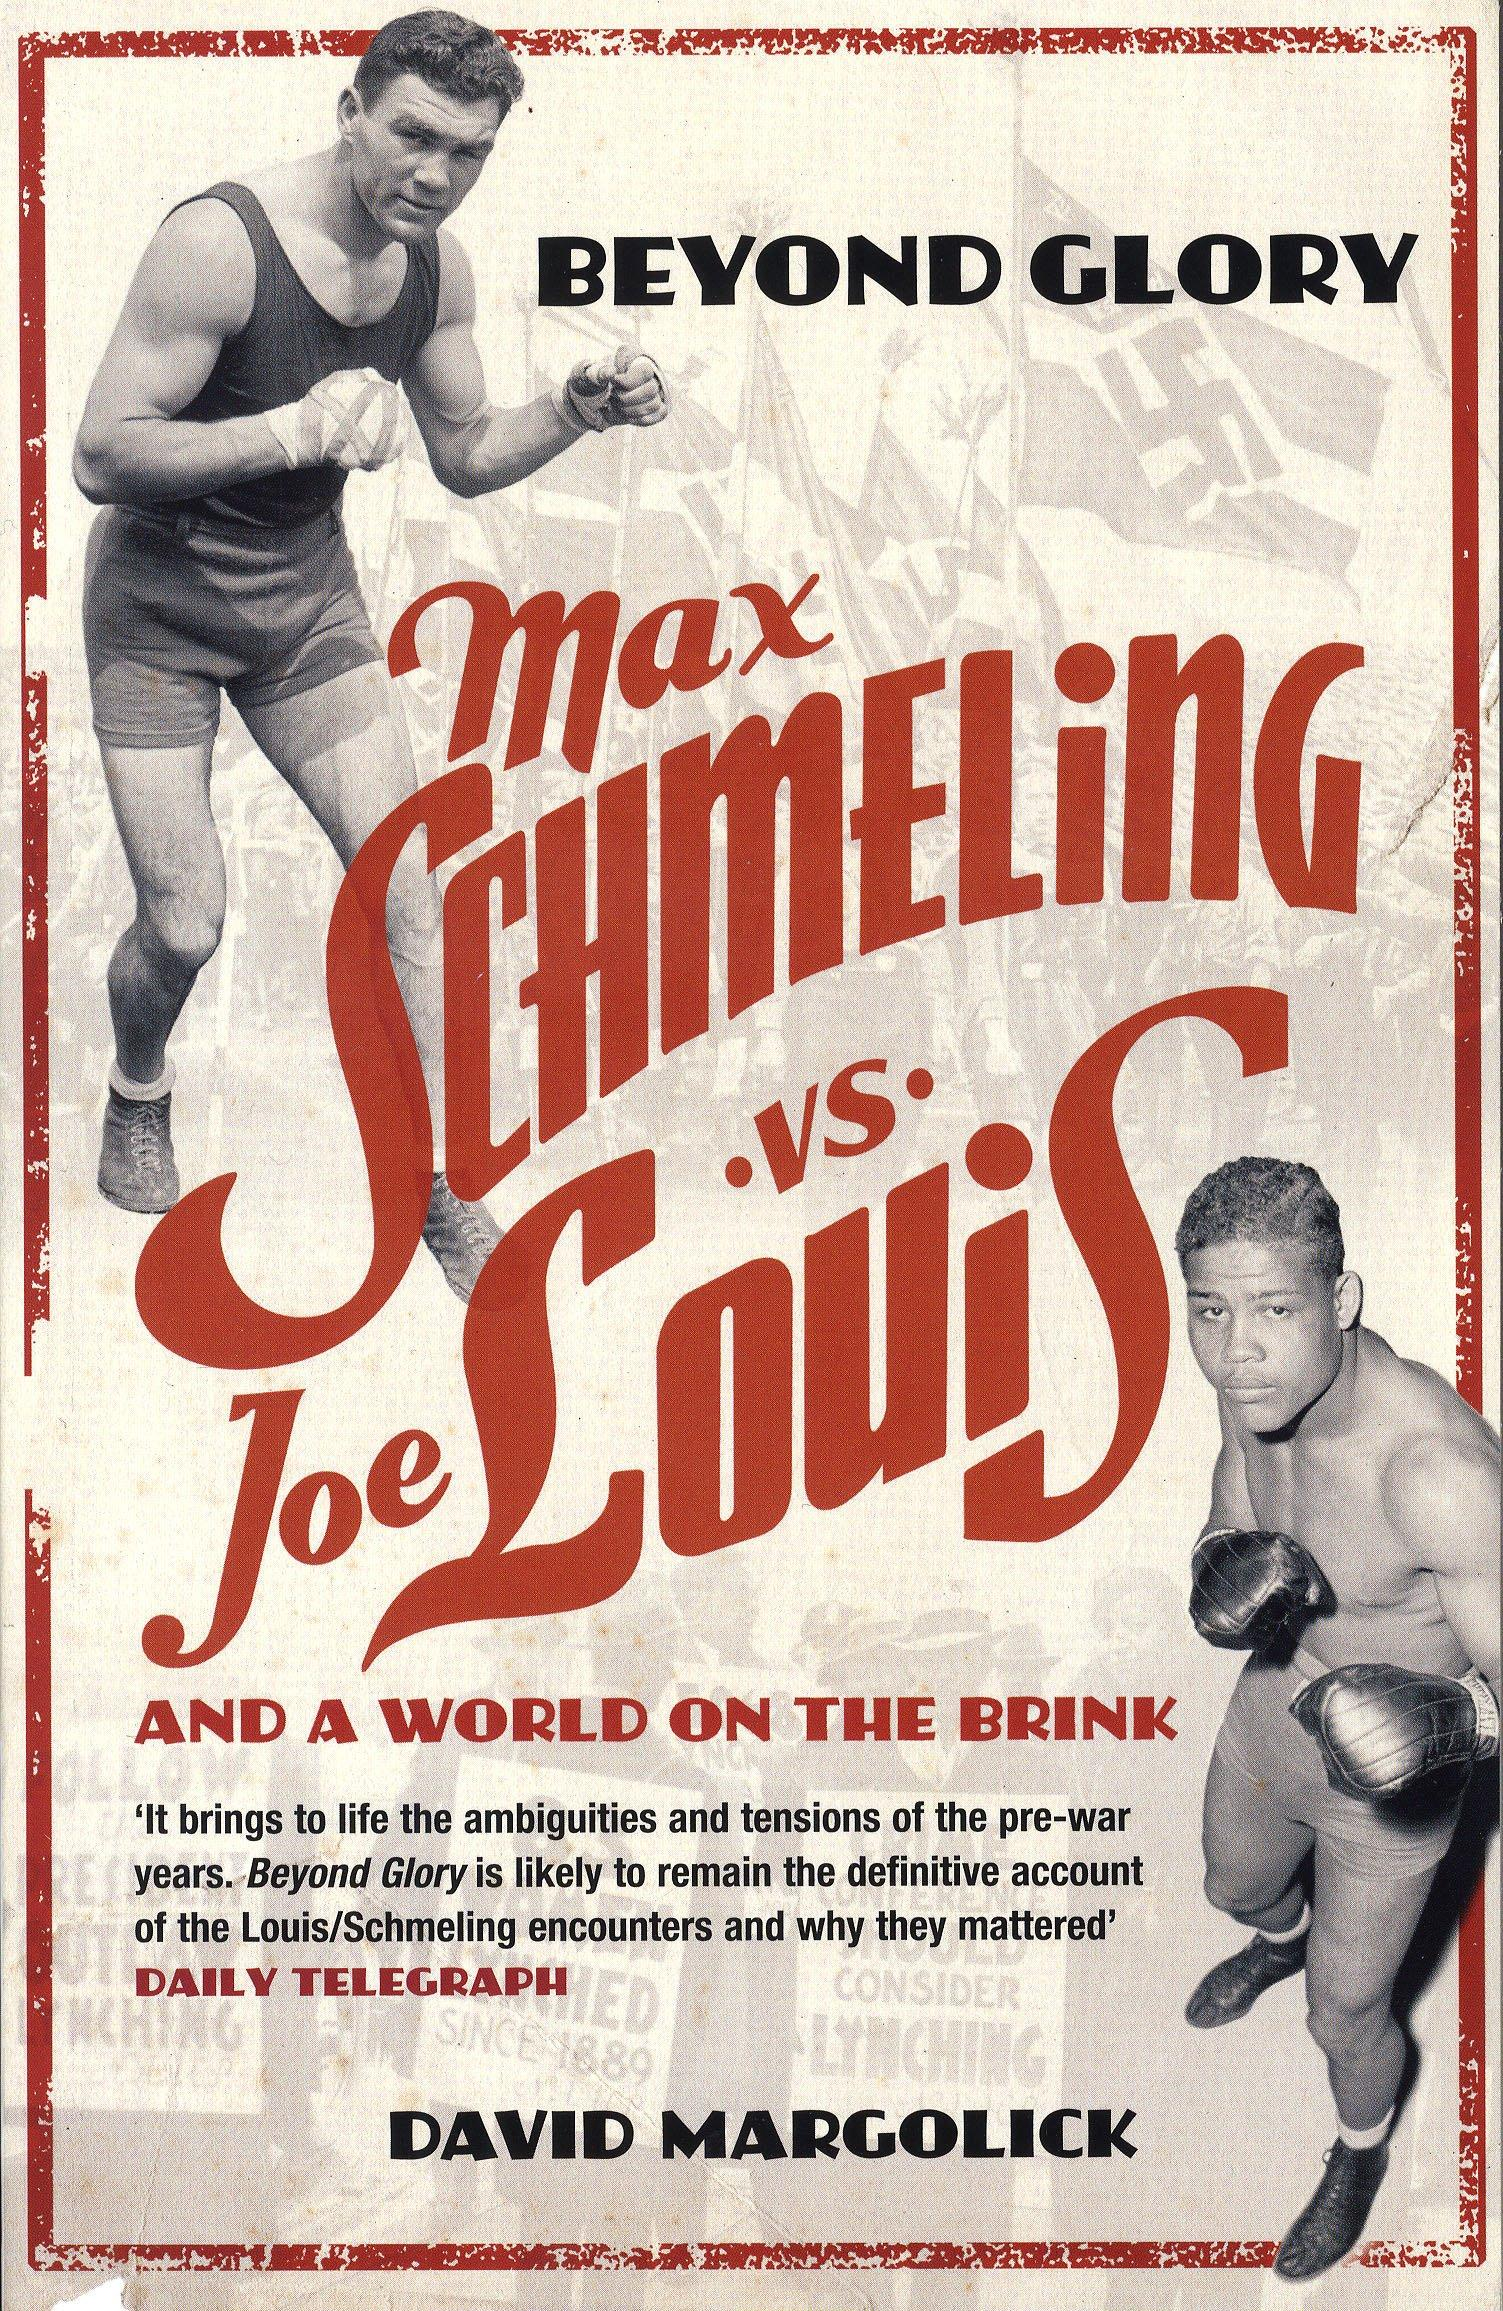 Max Schemling was a favourite with the Nazi regime - but was put in his place by black American Joe Louis